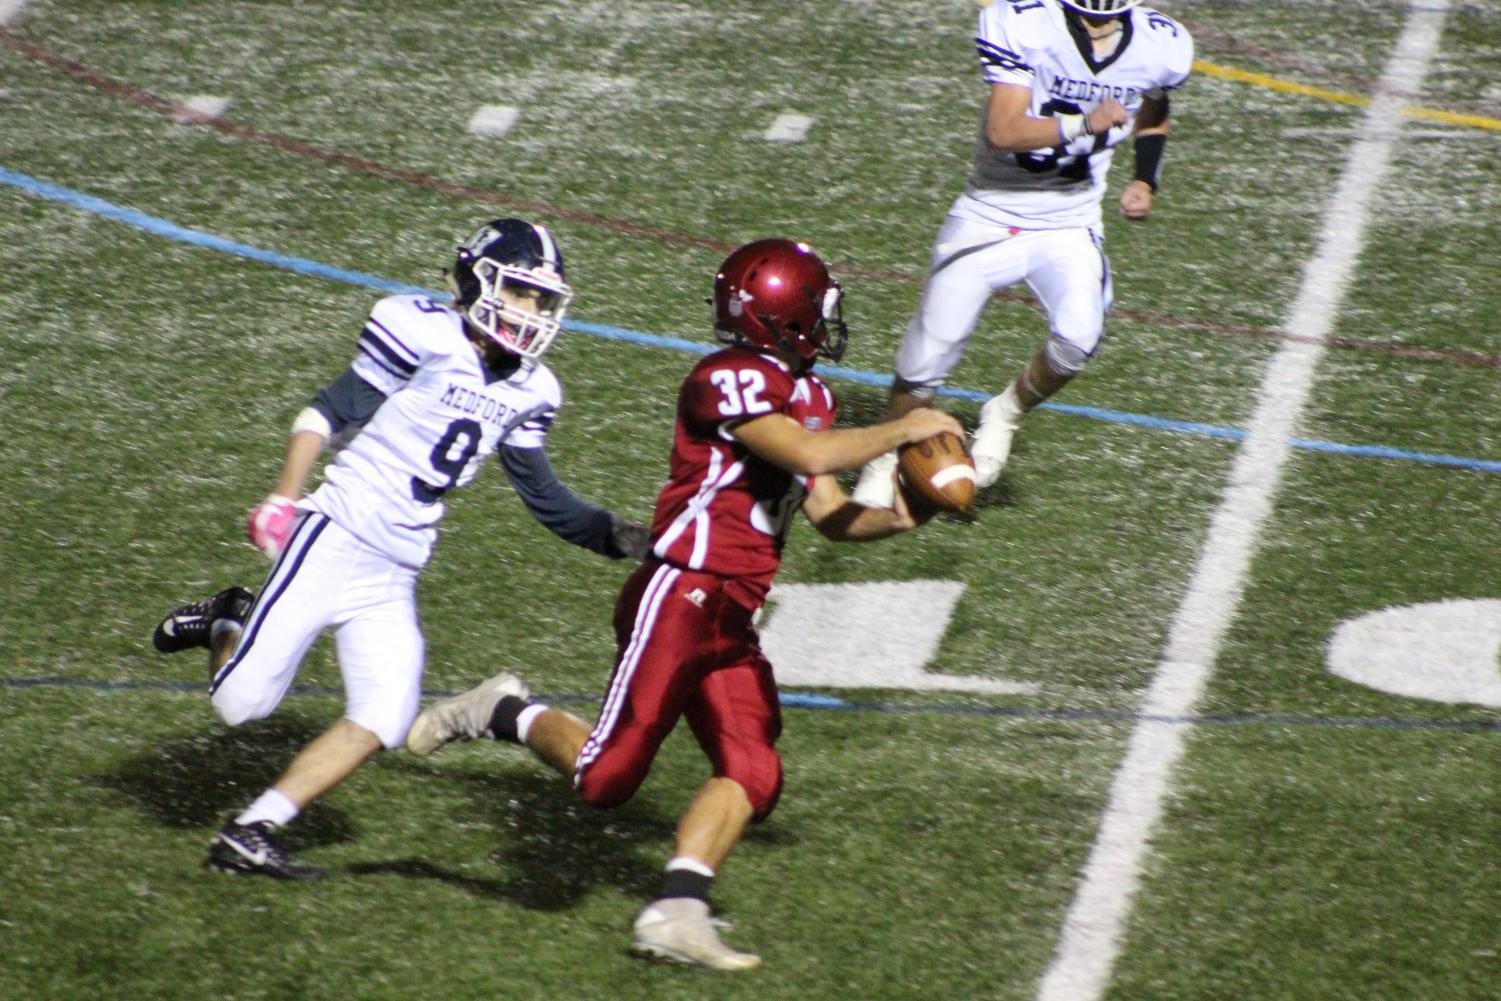 Marc Smith (32) attempts to throw as he is being rushed by a Medford player